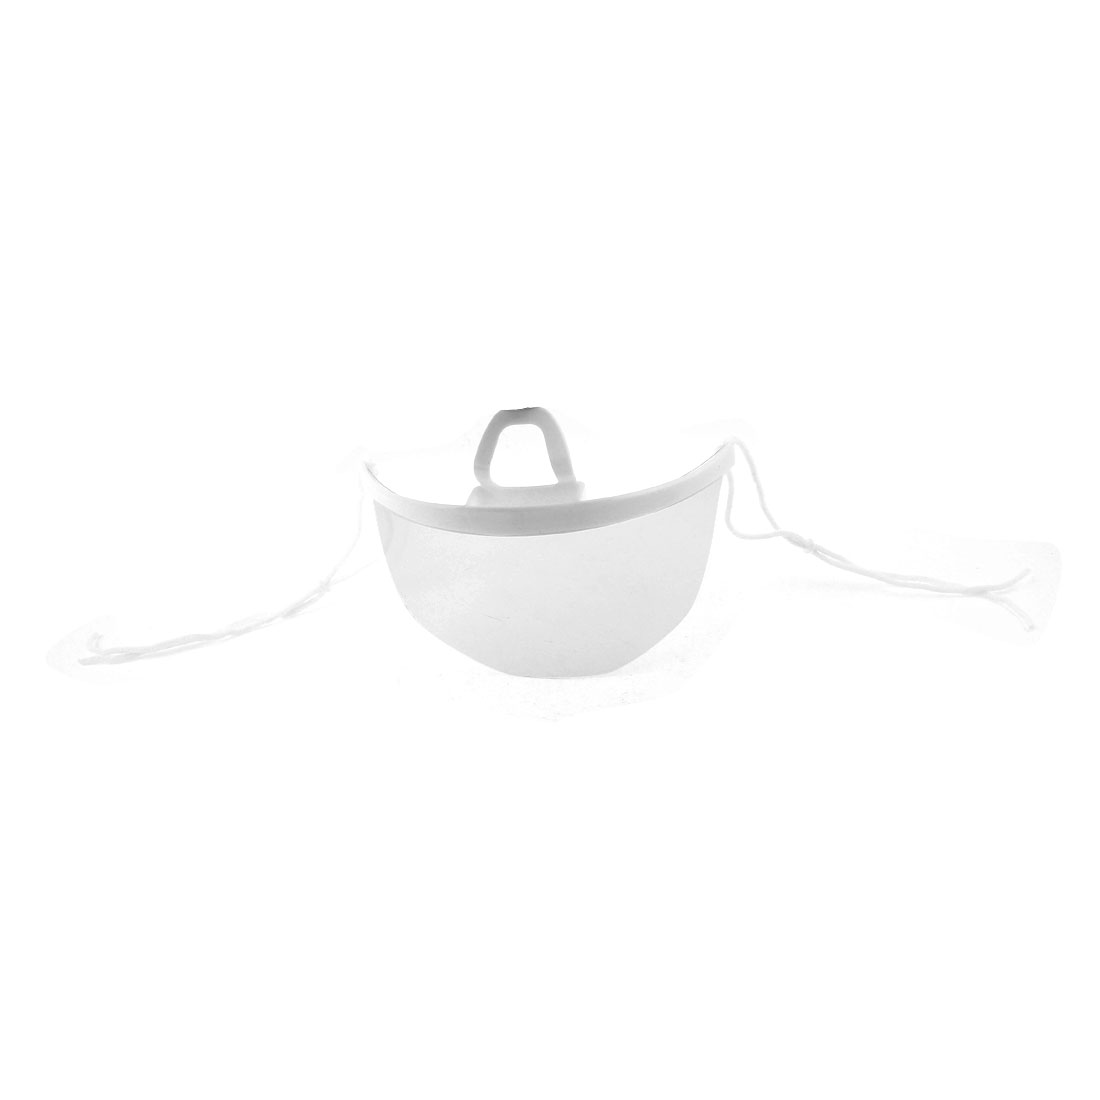 Adjustable Strap Frameless Plastic Hygienic Face Mask White Clear